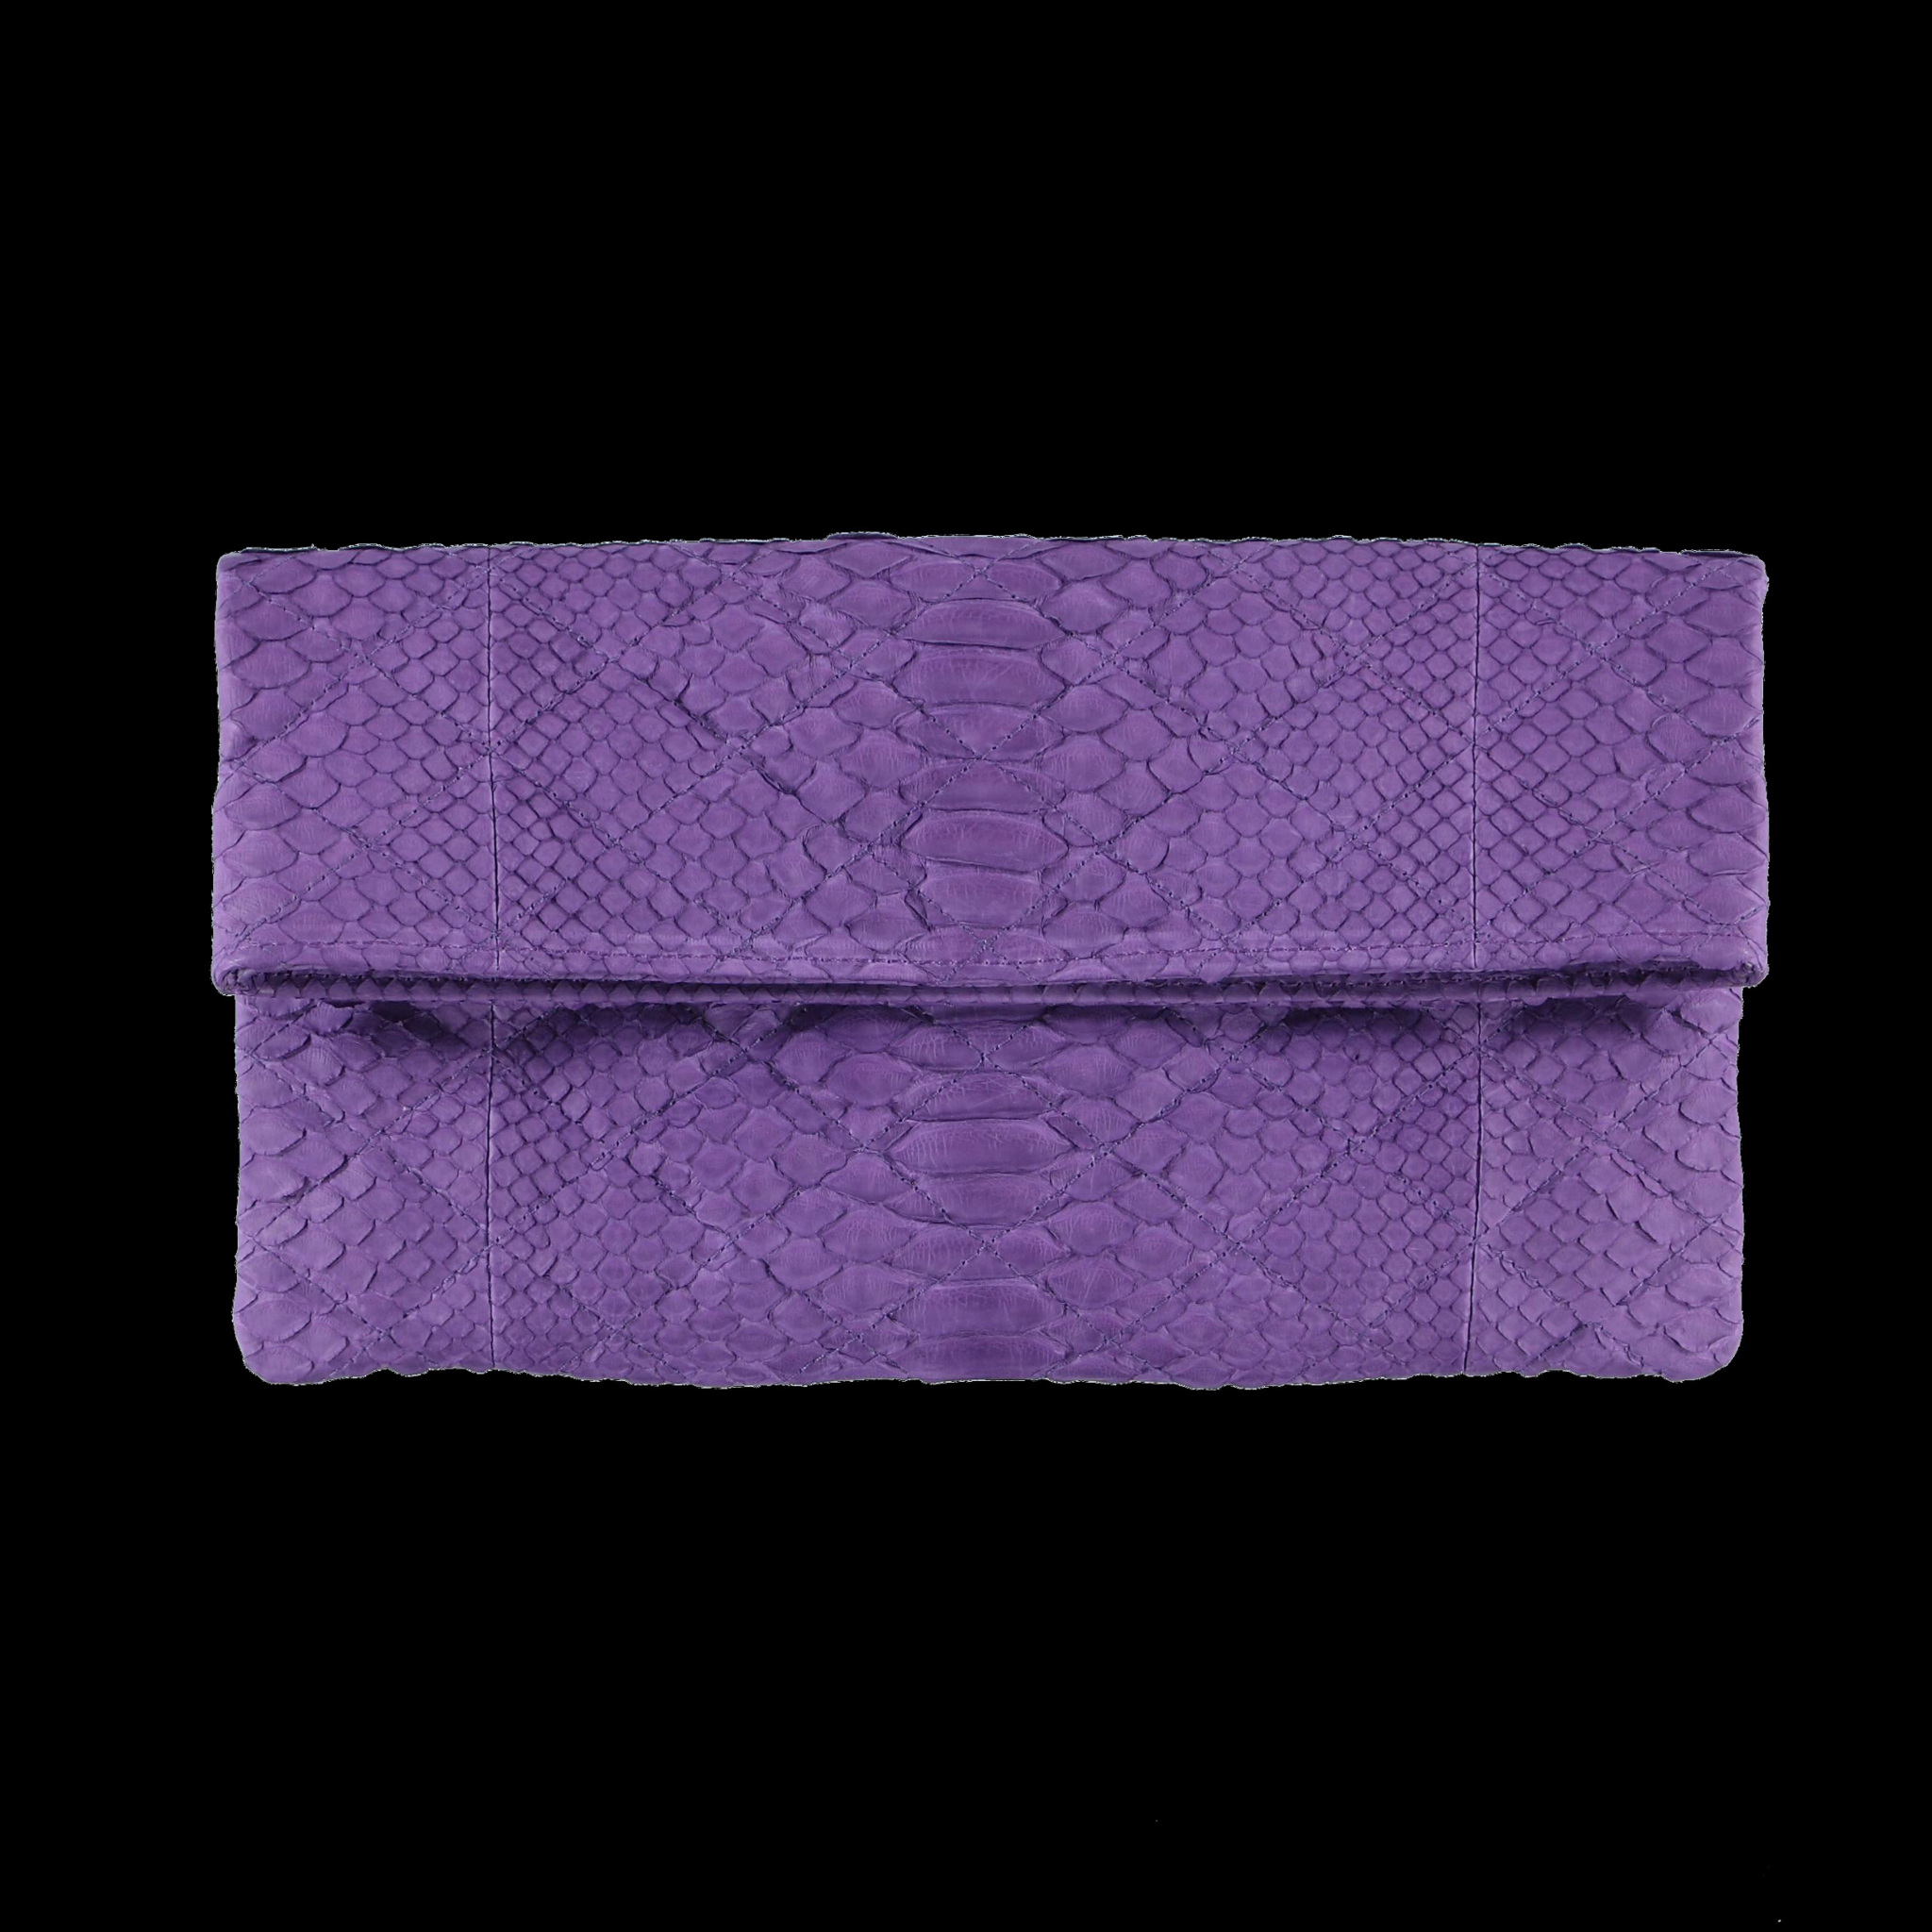 Quilted purple clutch